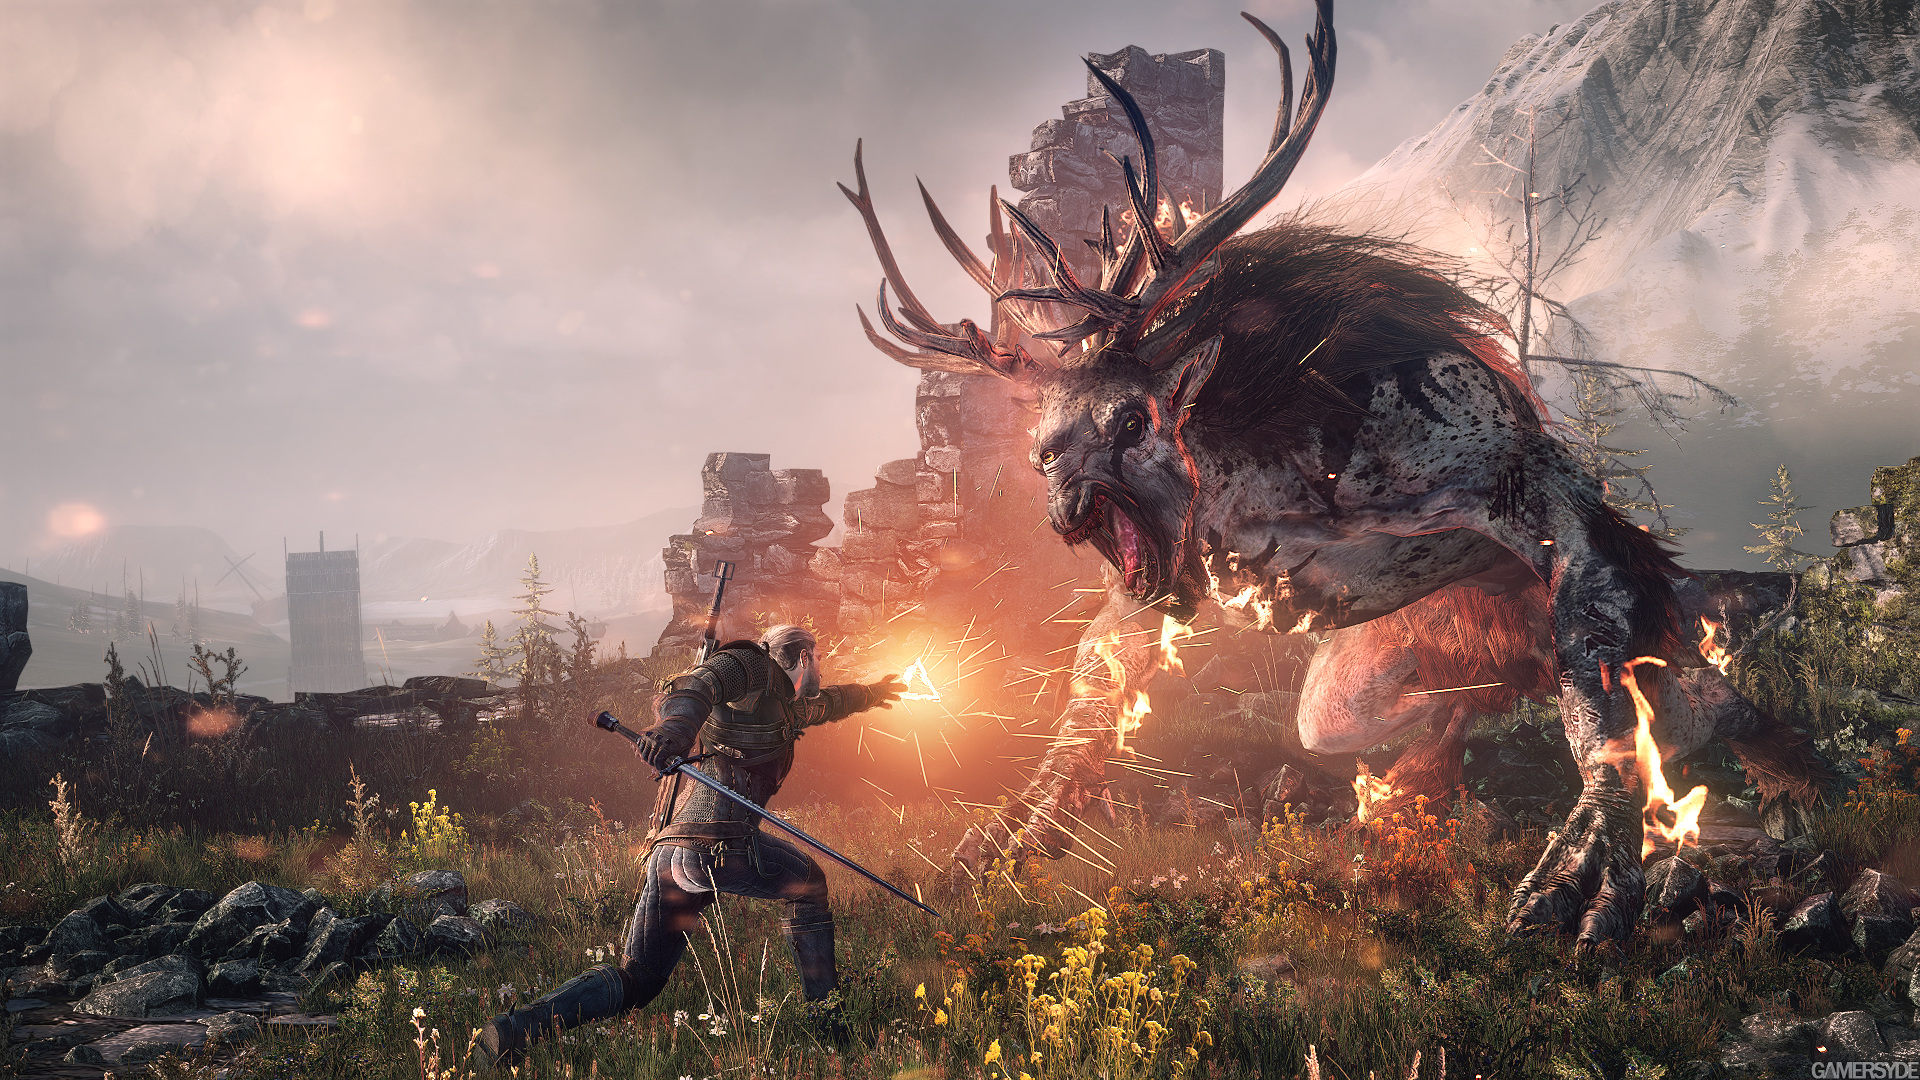 Witcher 3 Image_the_witcher_3_wild_hunt-22370-2651_0001